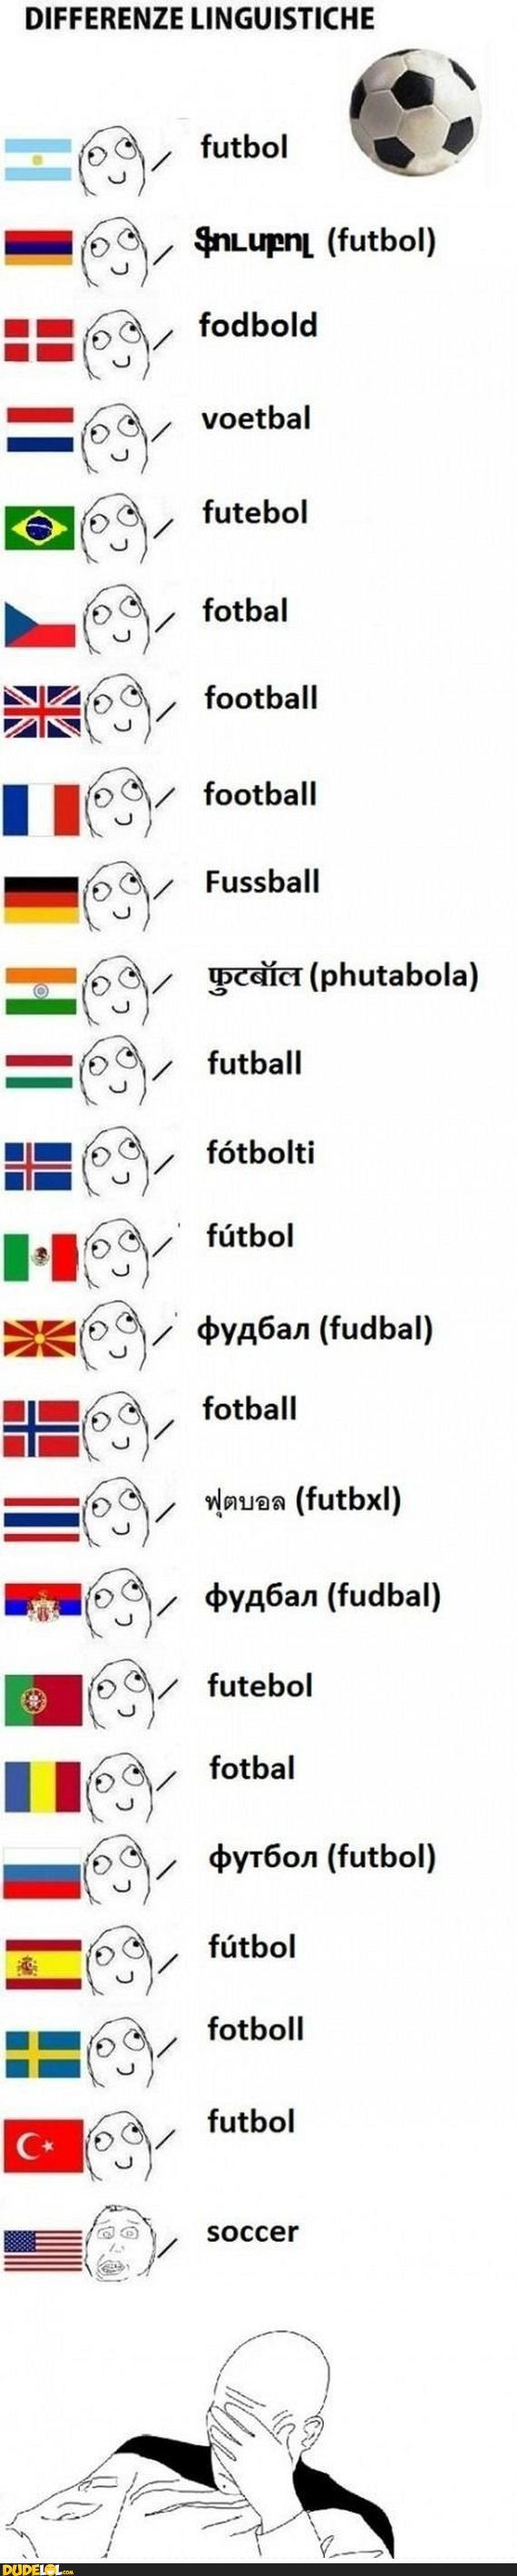 Futbol: Laughing, America, Football, Sports, Funny Stuff, Humor, Language, True Stories, Soccer Funny